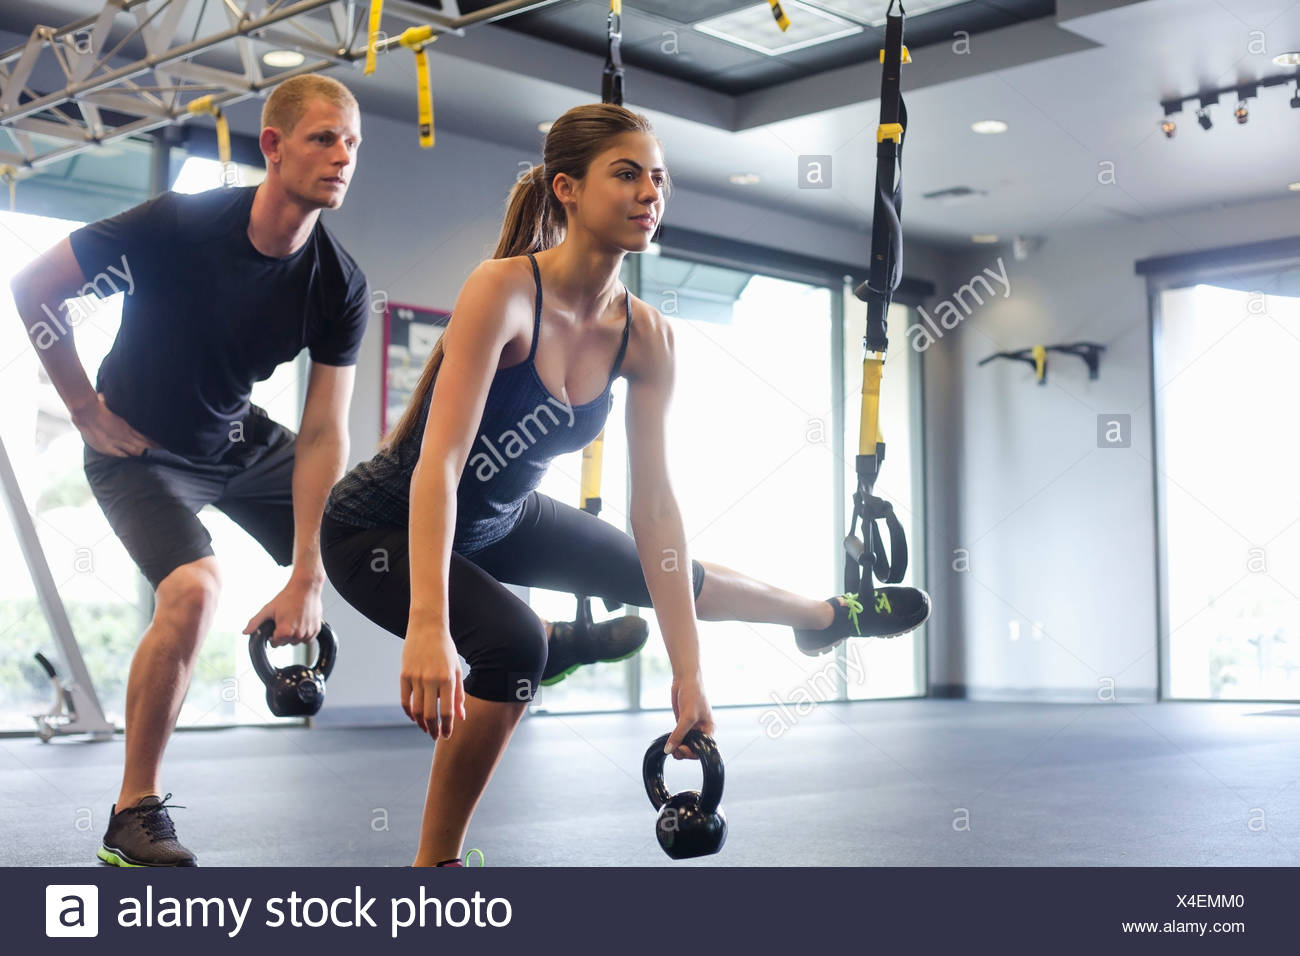 Couple working out with weights Stock Photo